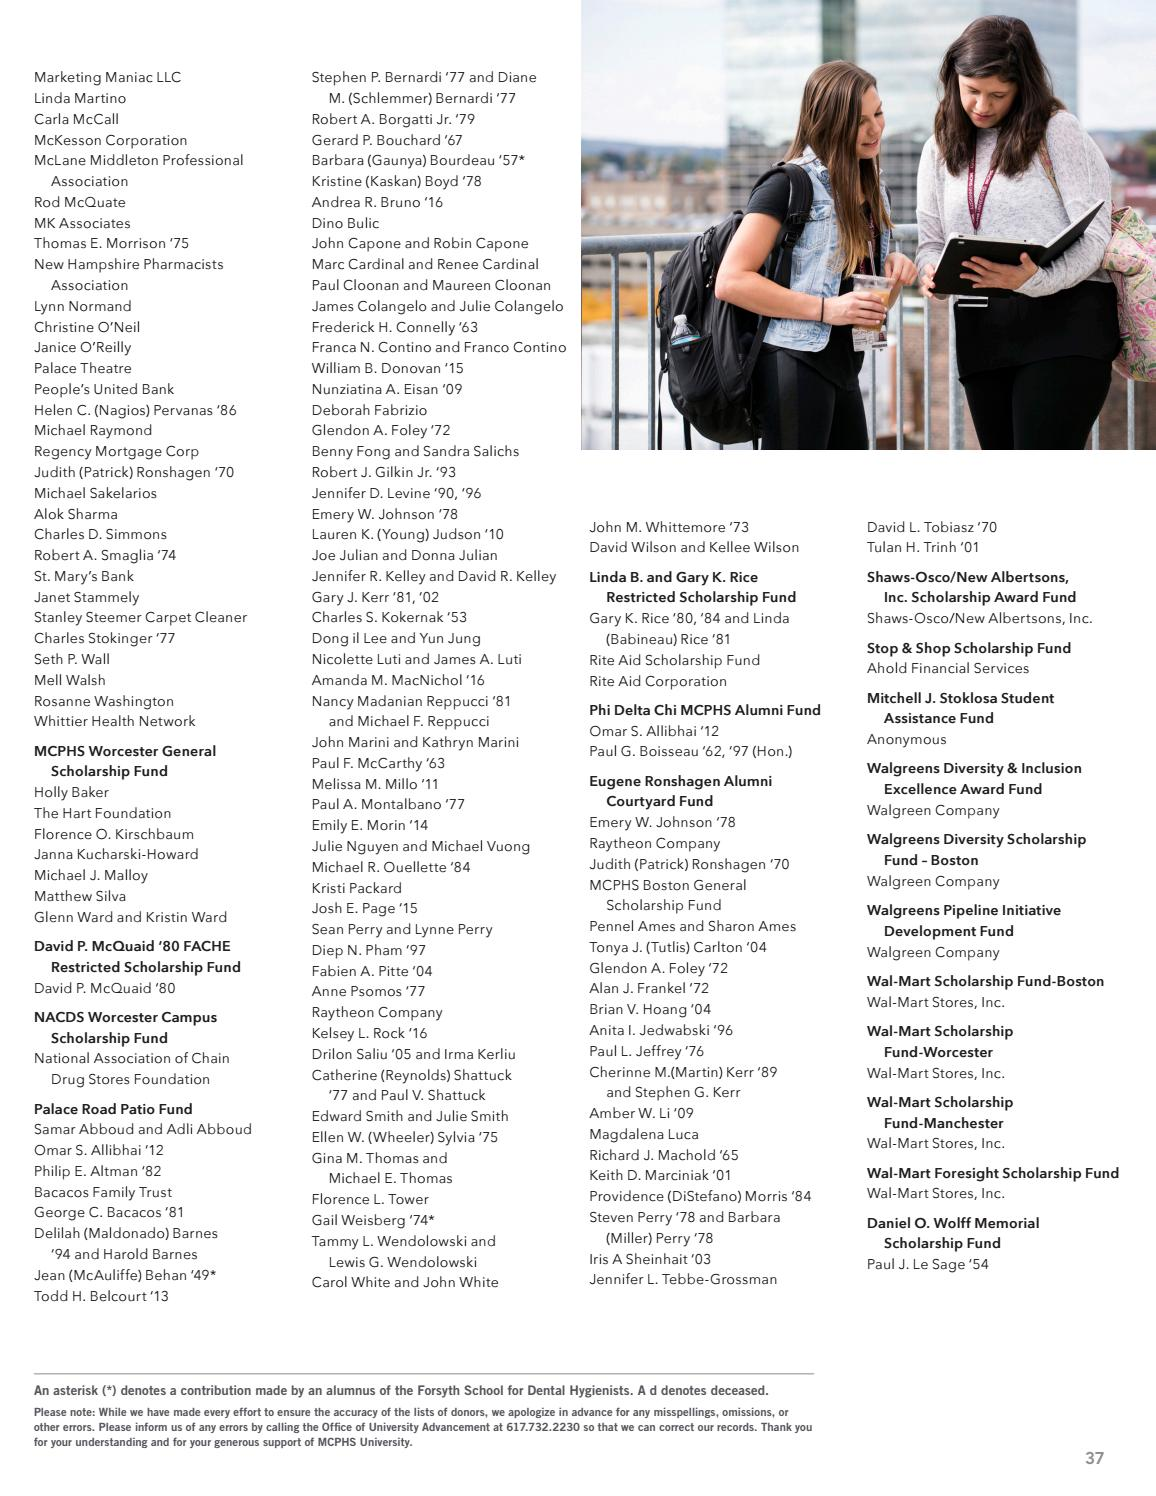 MCPHS University 2016 Report on Giving by Massachusetts College of